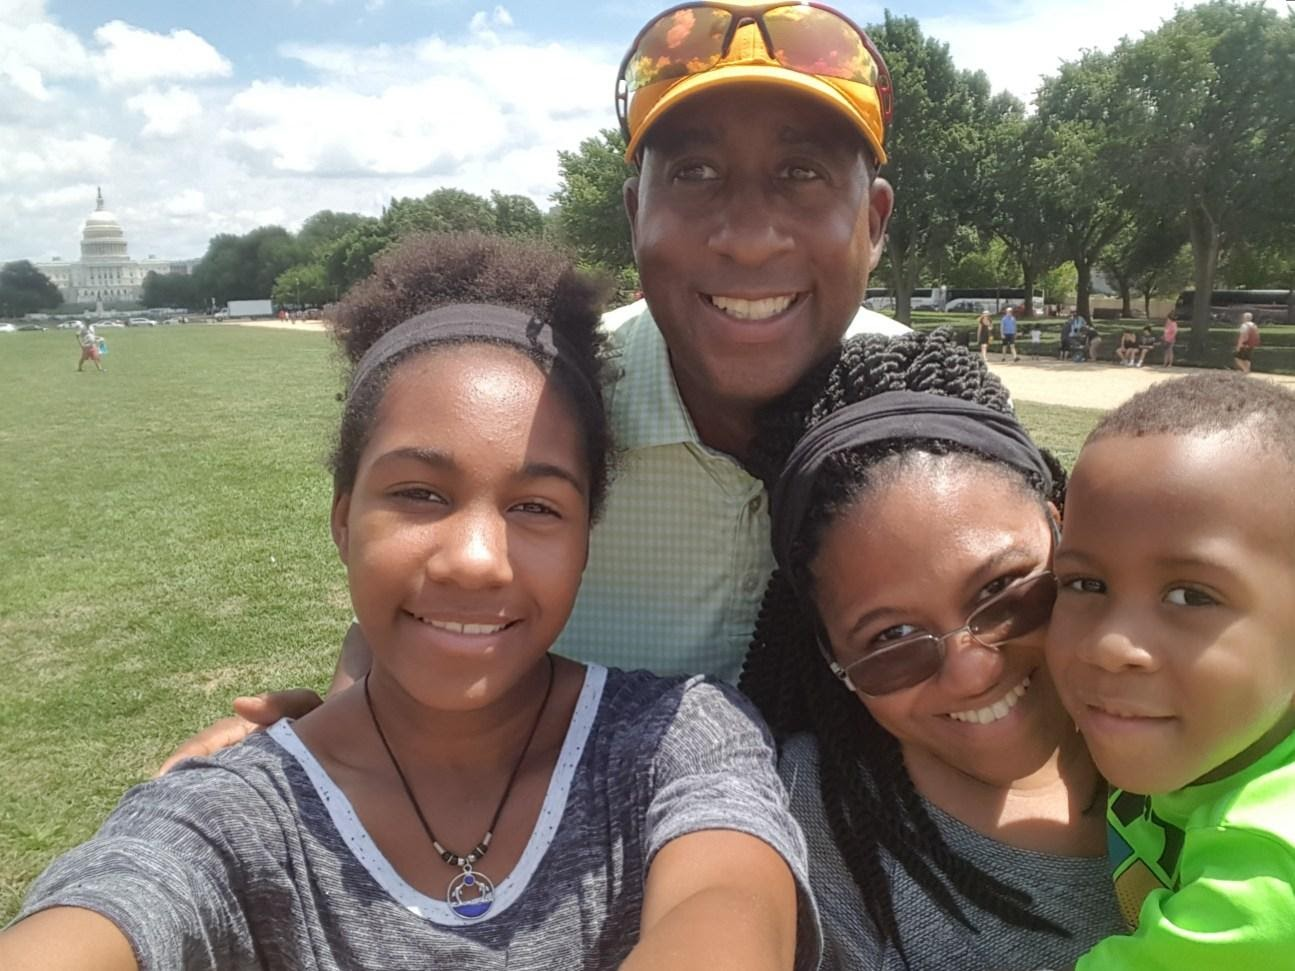 selfie-style photo of man, woman, son, daughter